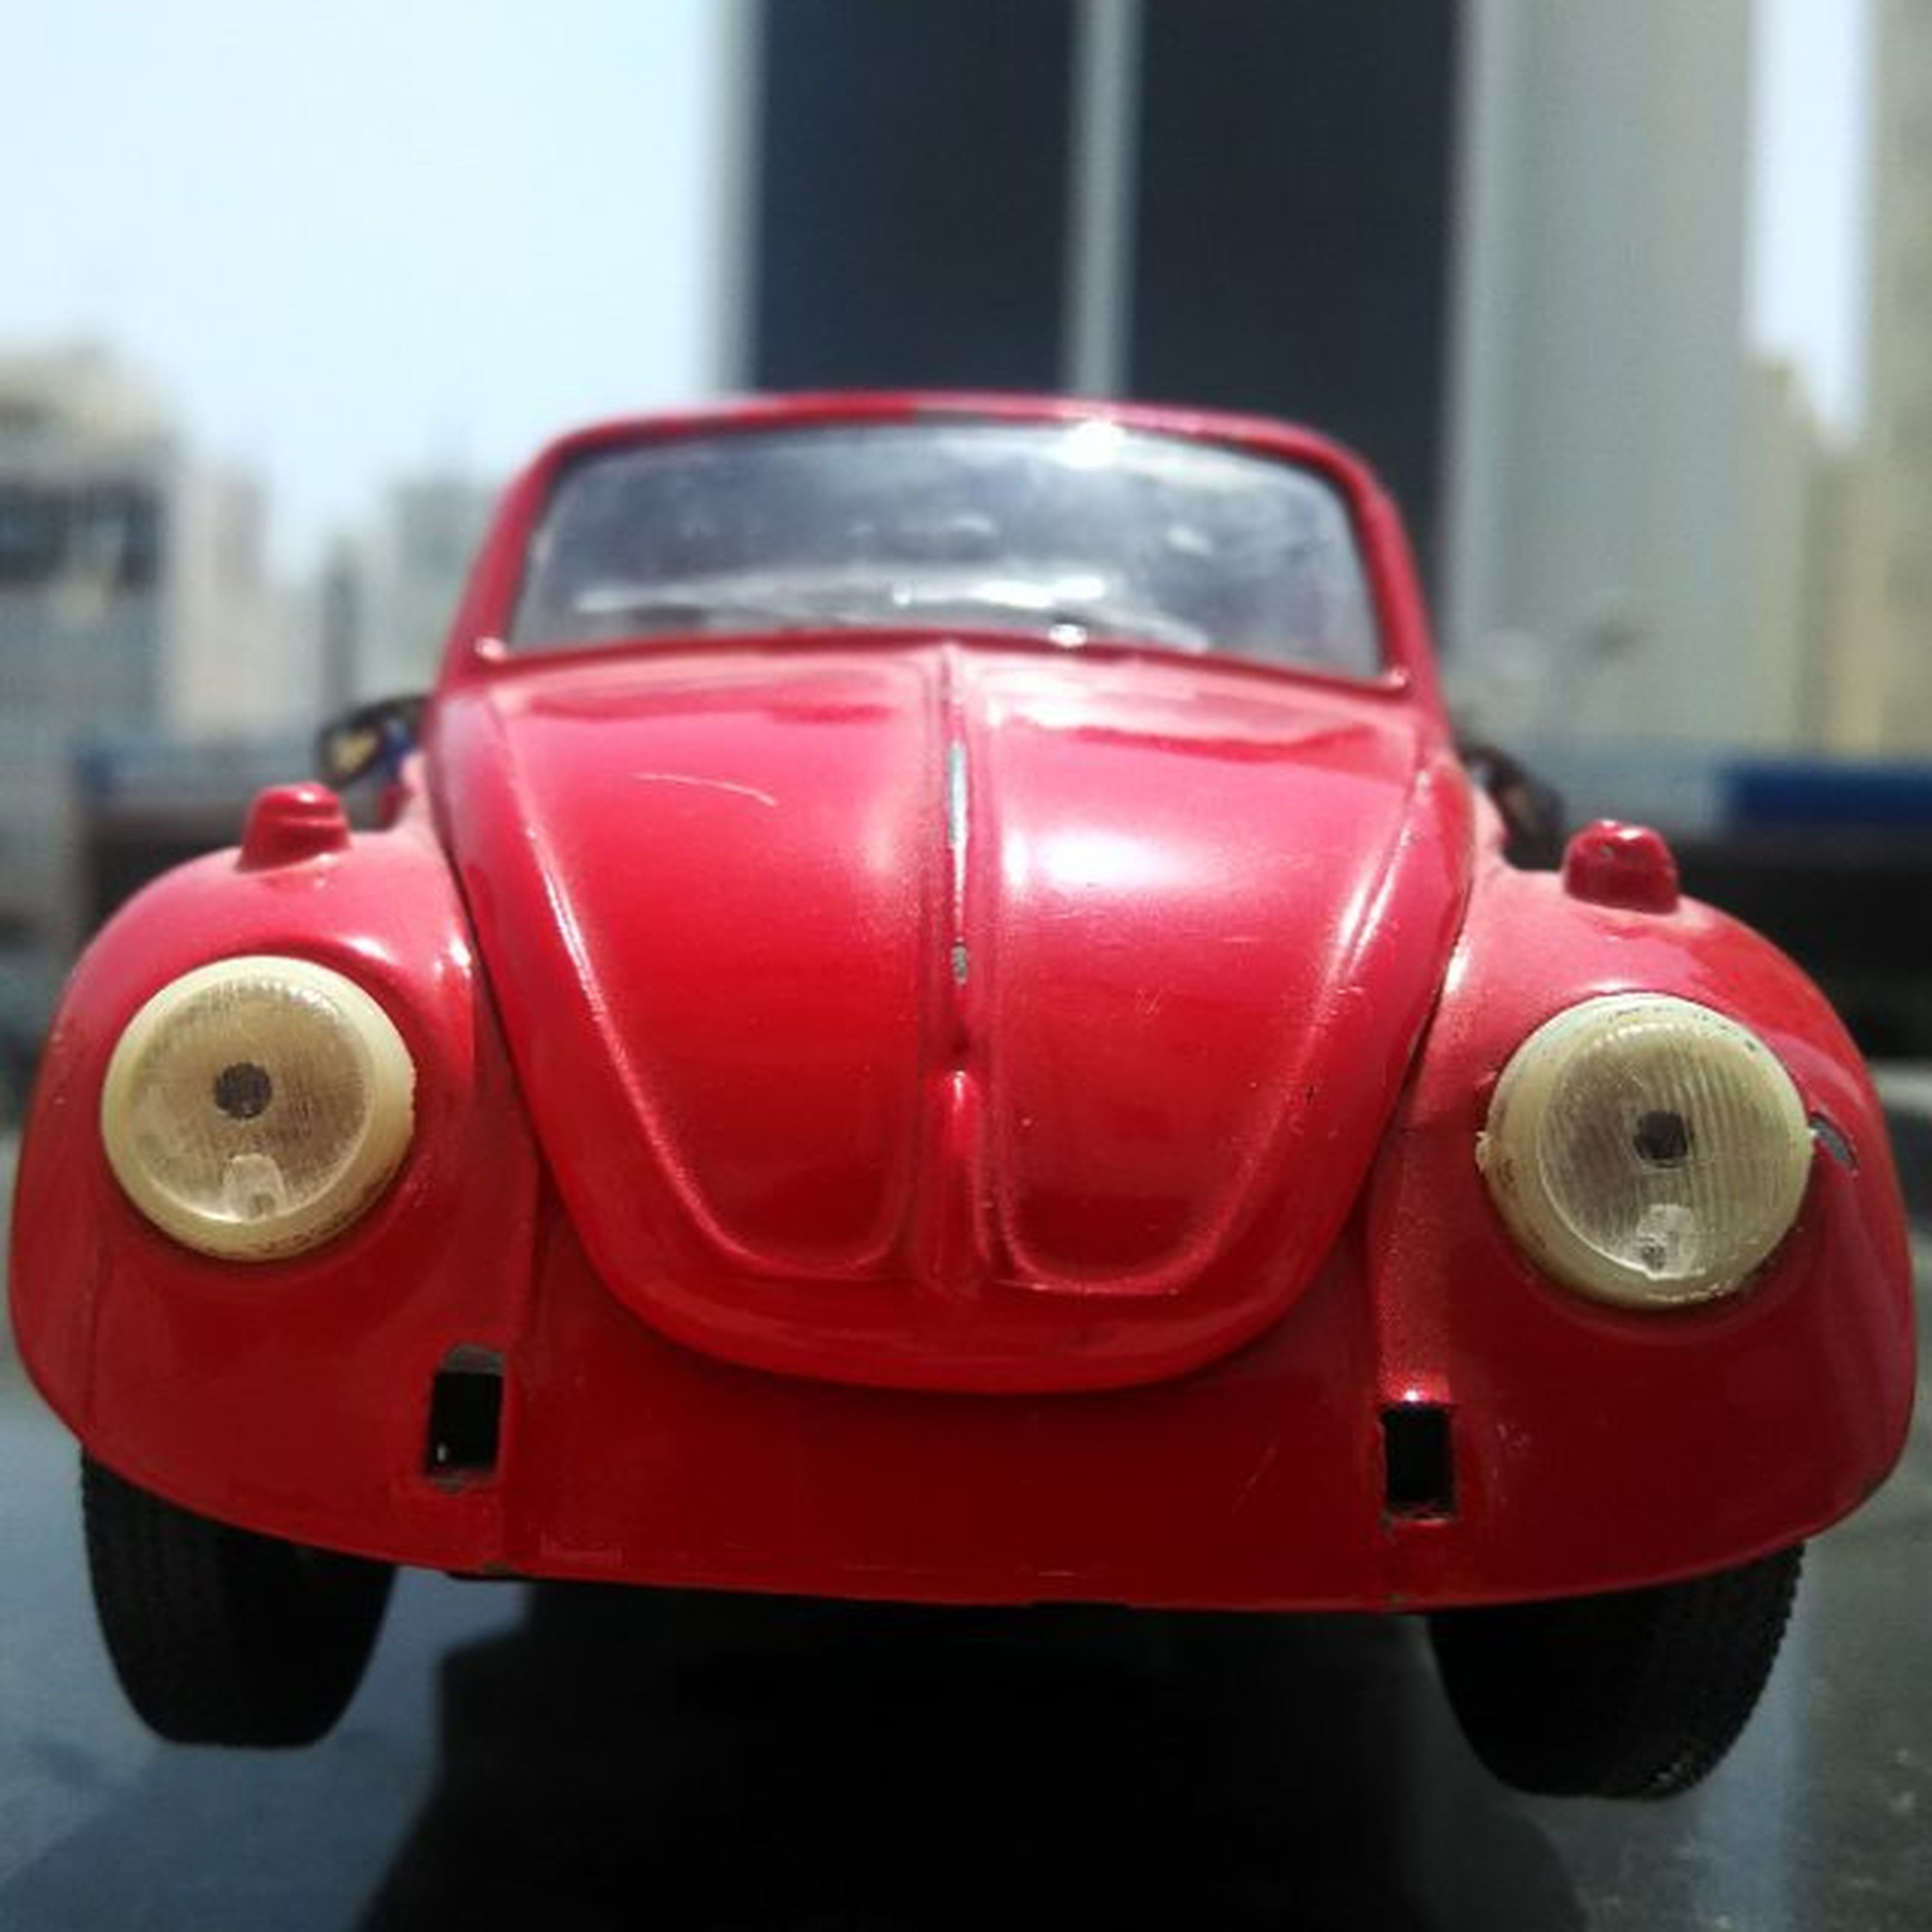 Volkswagen Beetle Scale model. Modelcar Collection Beautiful Red 3of3 Nofilter Nofilterneeded Volkswagen Vwbeetle Vwbeetlelovers Beetle